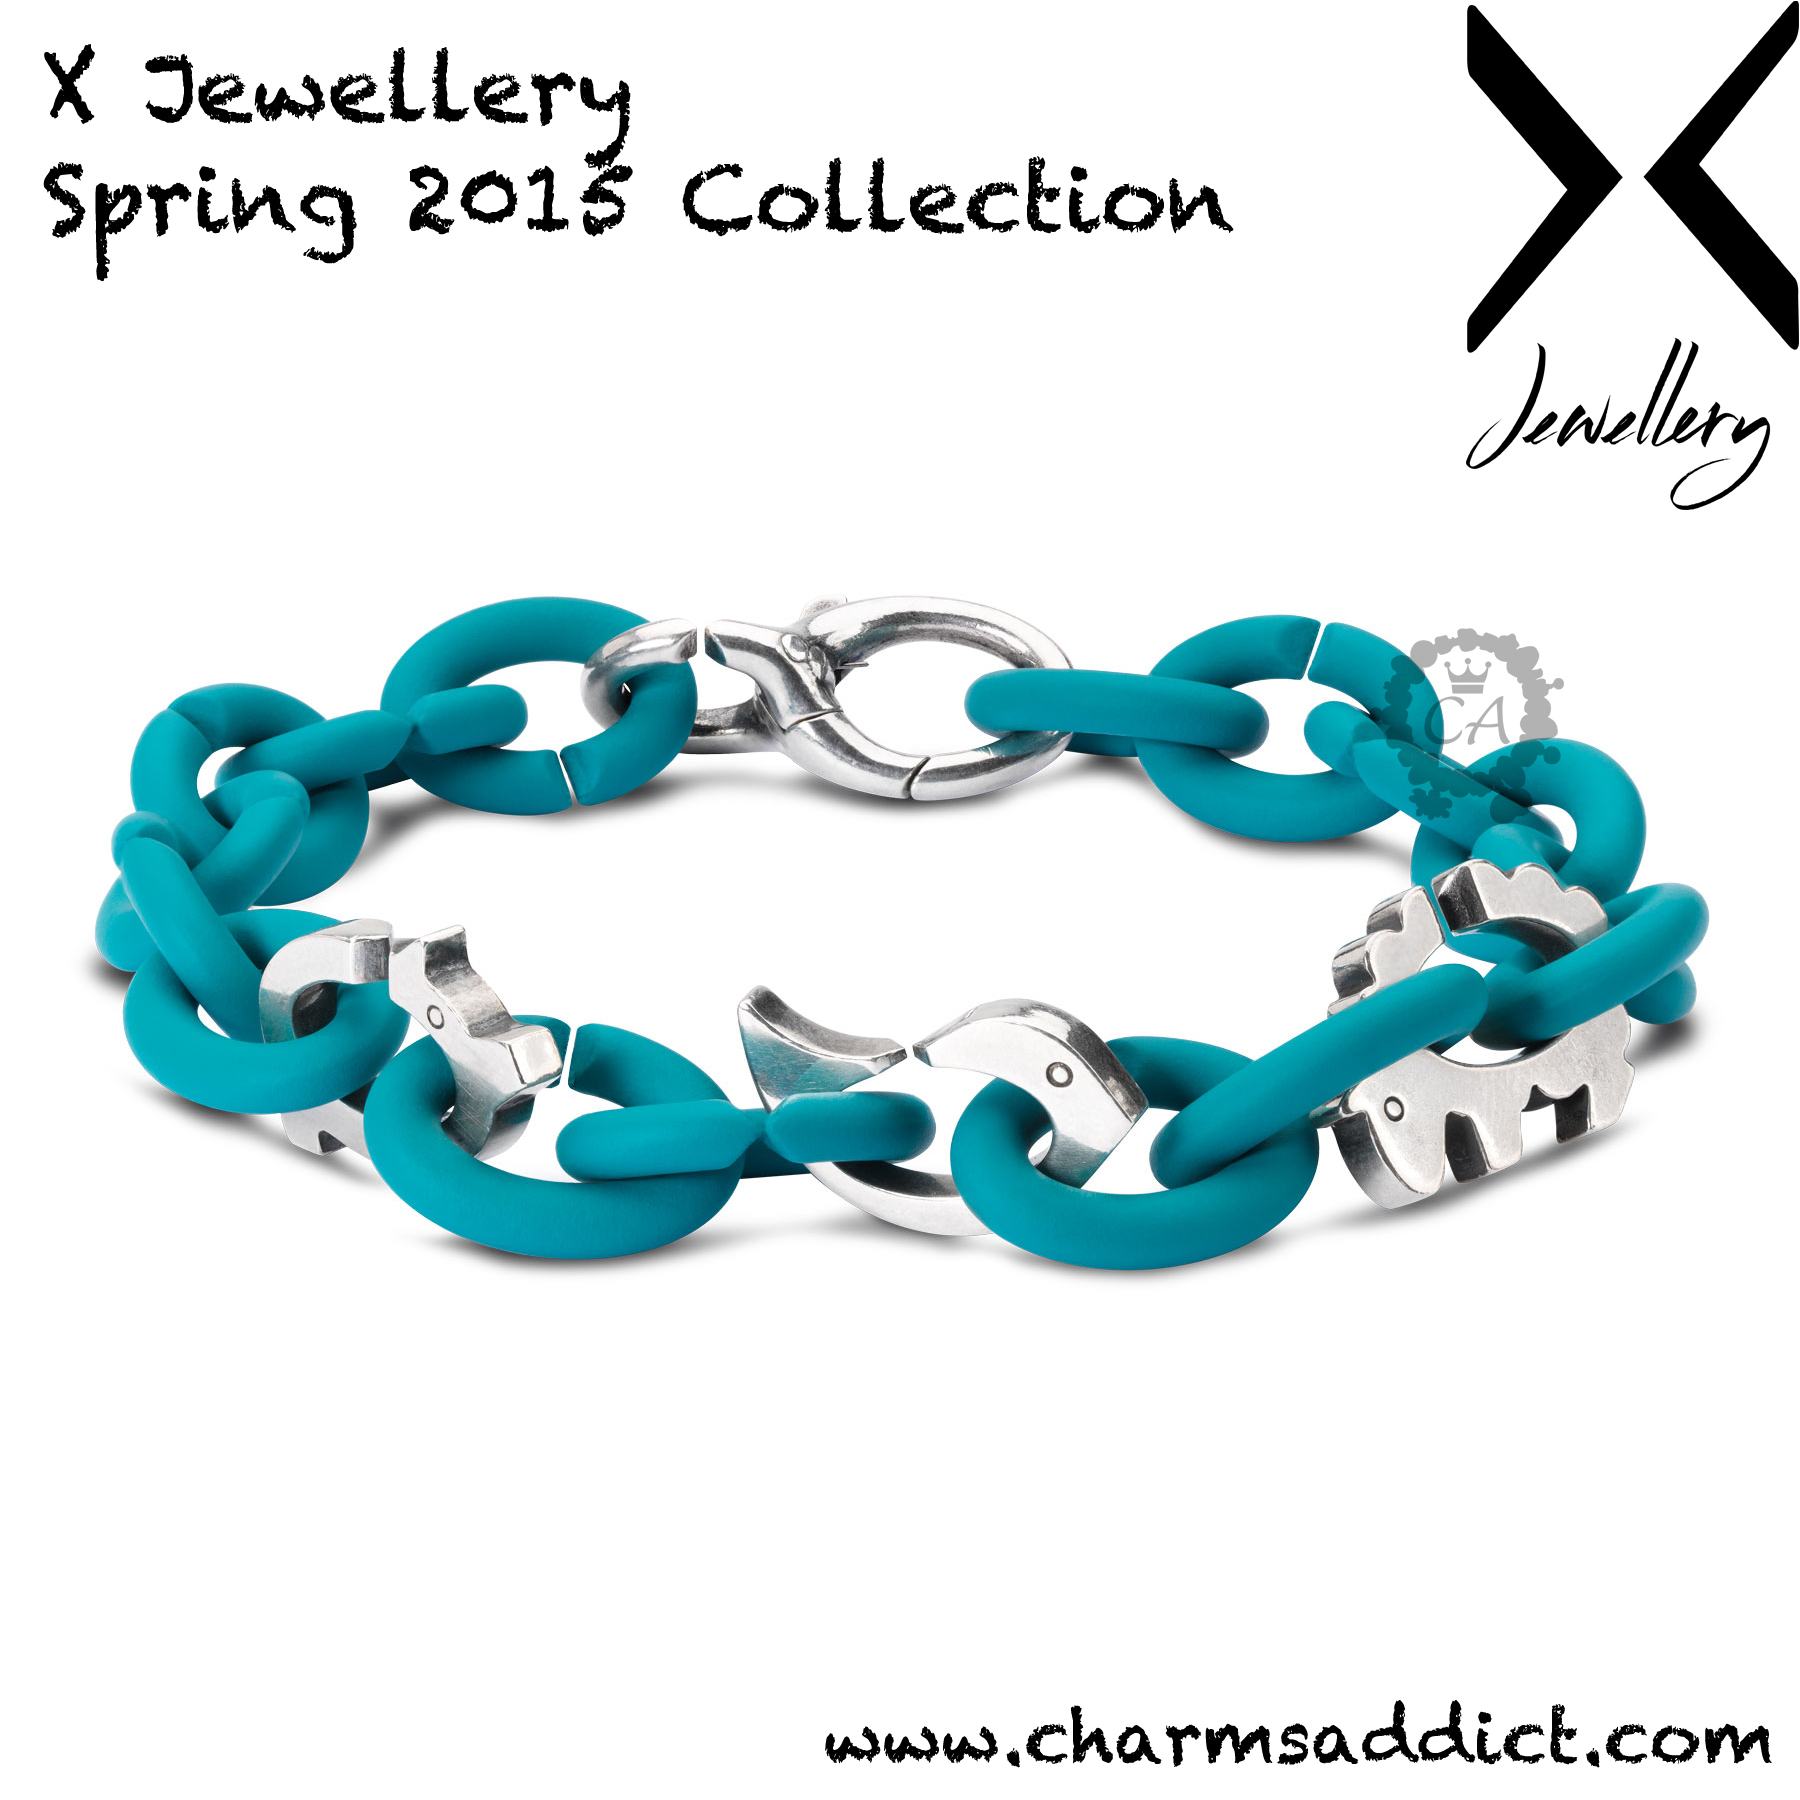 X Jewellery Spring 2015 Collection Preview